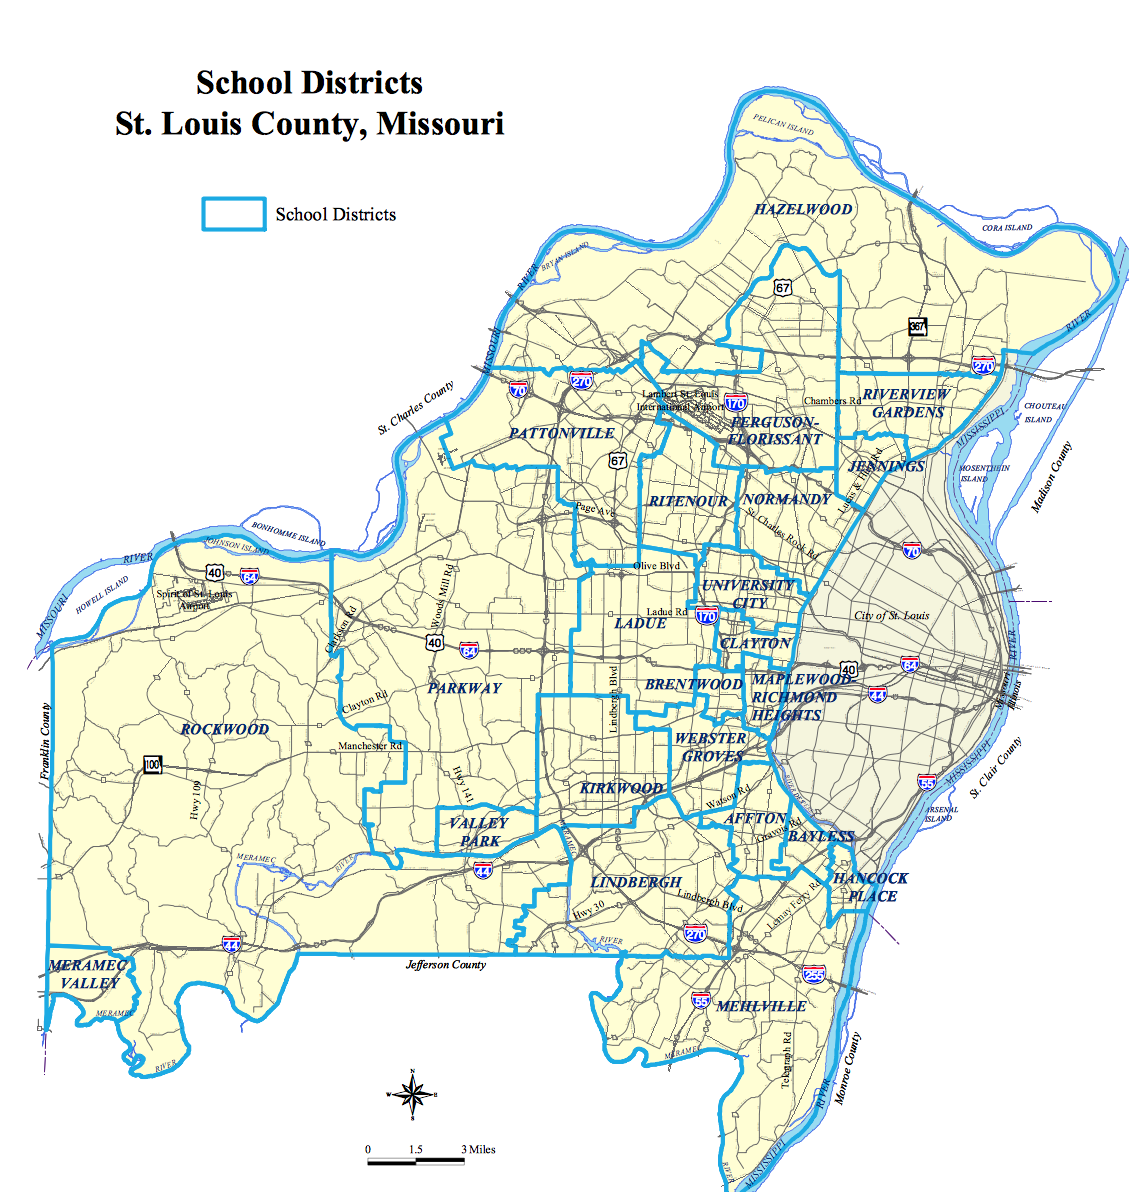 St Louis County Maps St. Louis County School Boundary Map | Rent Solutions